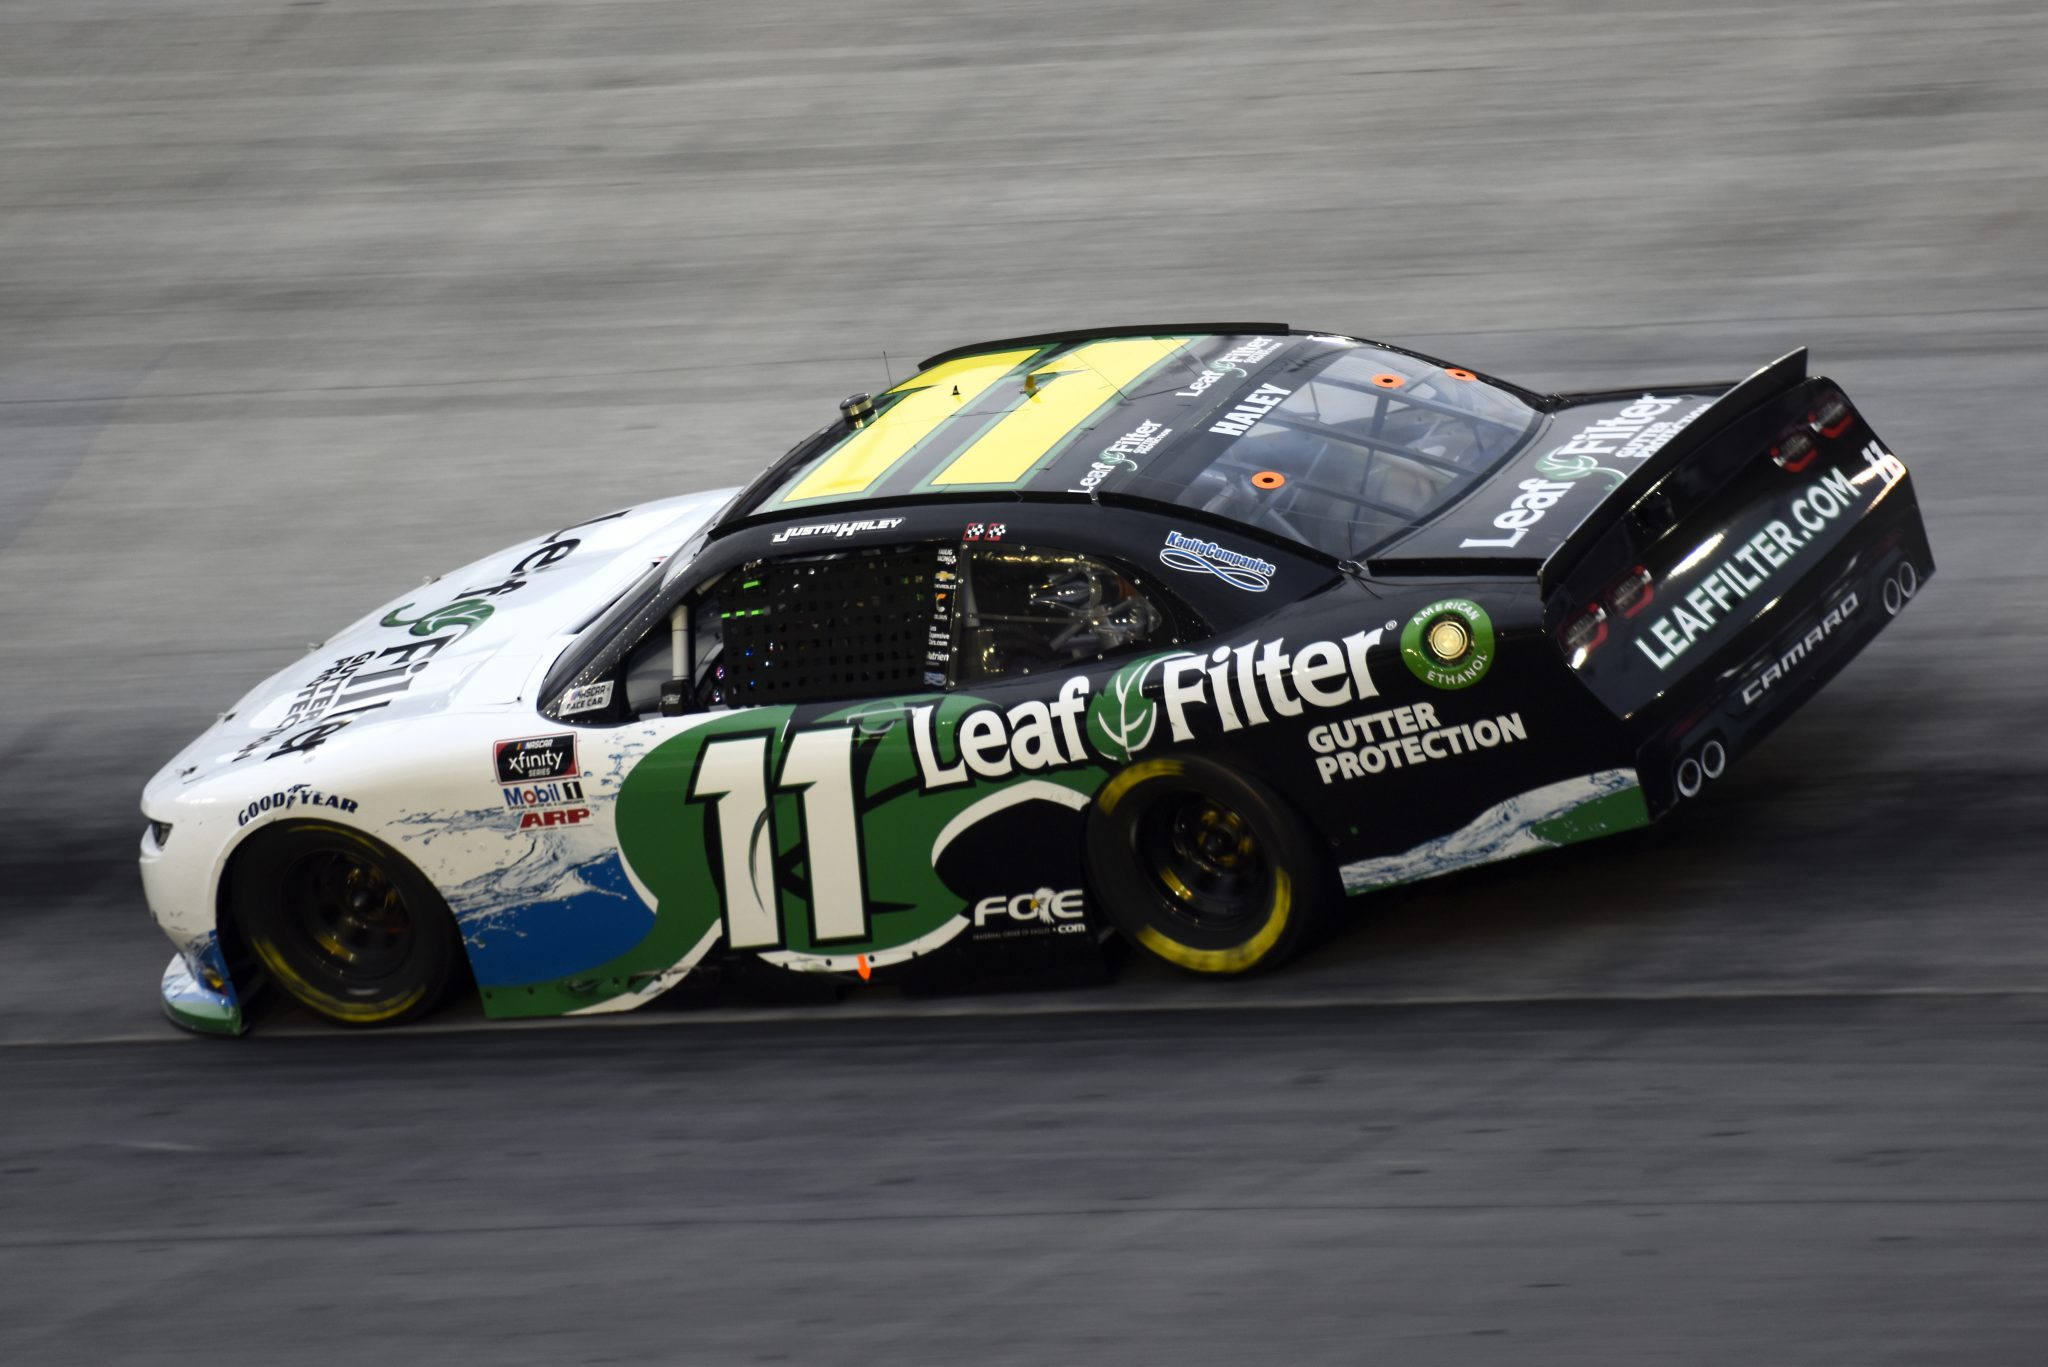 BRISTOL, TENNESSEE - SEPTEMBER 18: Justin Haley, driver of the #11 LeafFilter Gutter Protection Chevrolet, drives during the NASCAR Xfinity Series Food City 300 at Bristol Motor Speedway on September 18, 2020 in Bristol, Tennessee. (Photo by Jared C. Tilton/Getty Images) | Getty Images